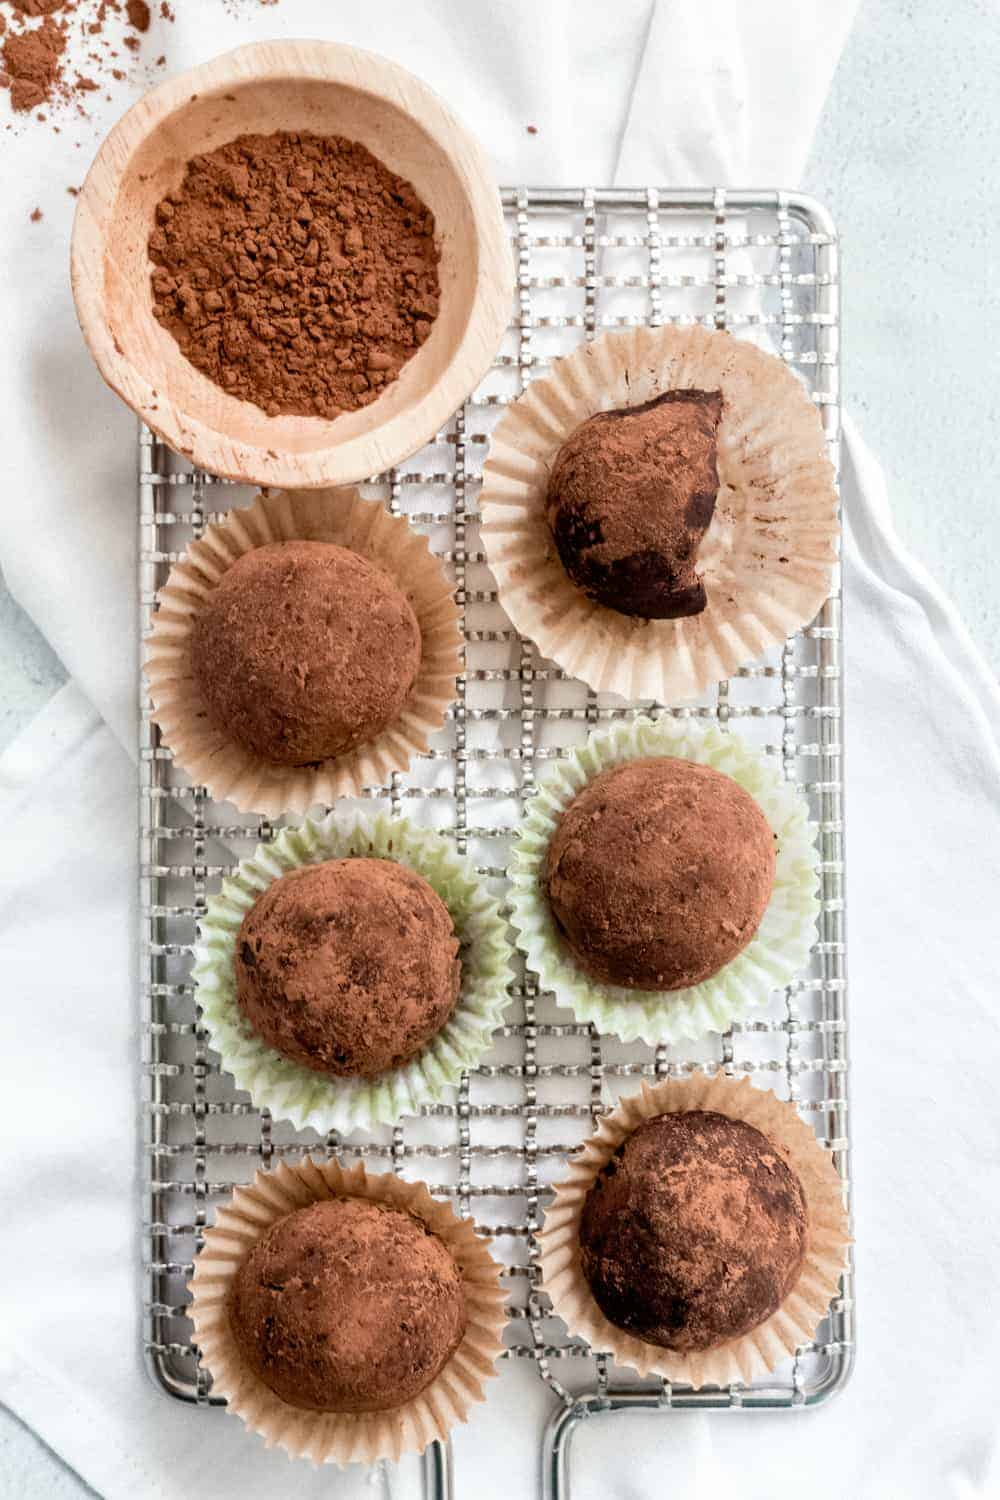 Rum balls arranged in mini baking cups on a baking rack, with a bite taken out of one